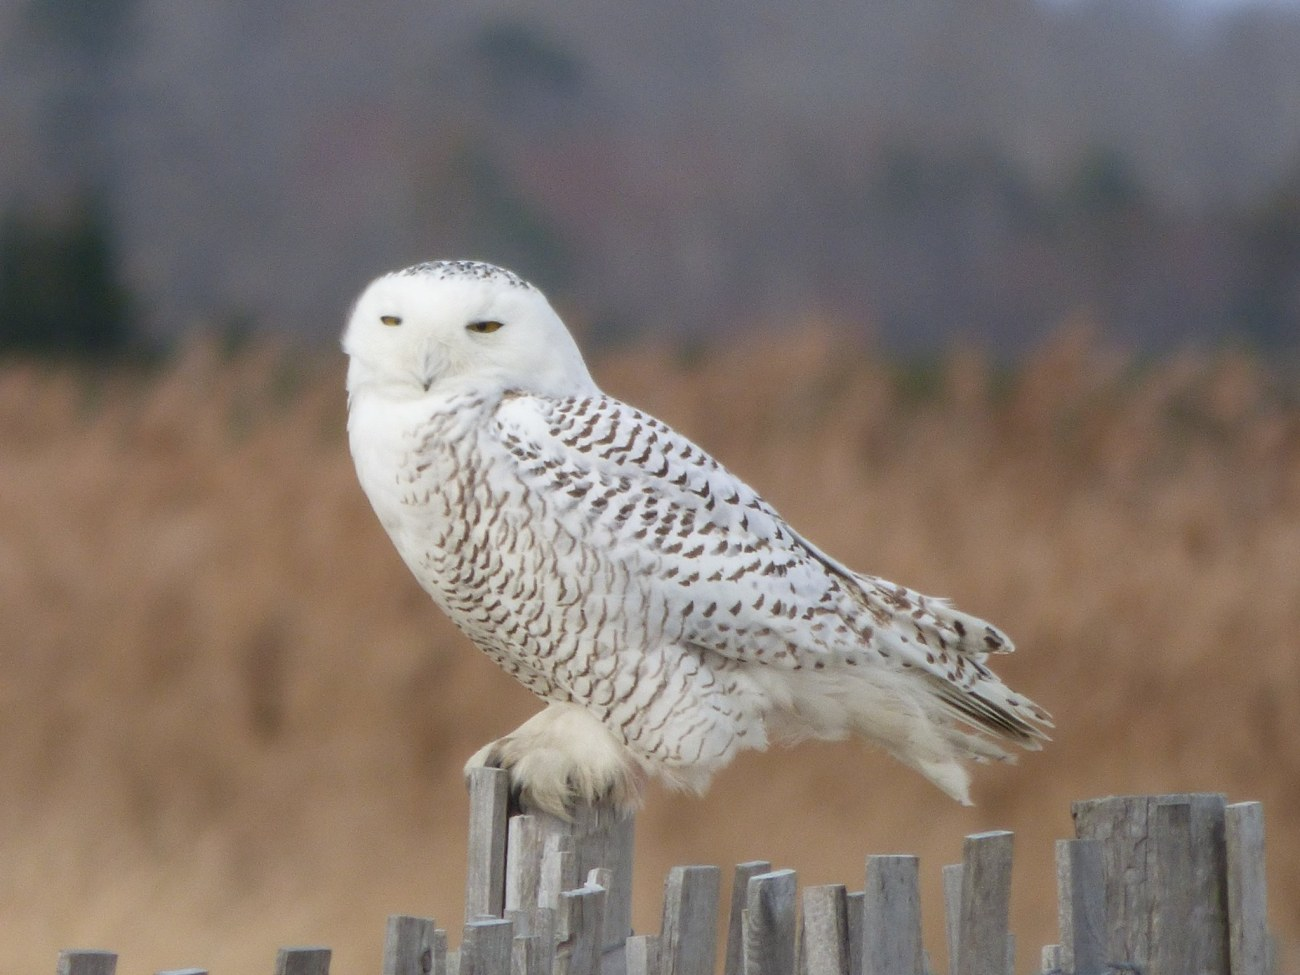 Snowy Owl Photo from Linda Lewis